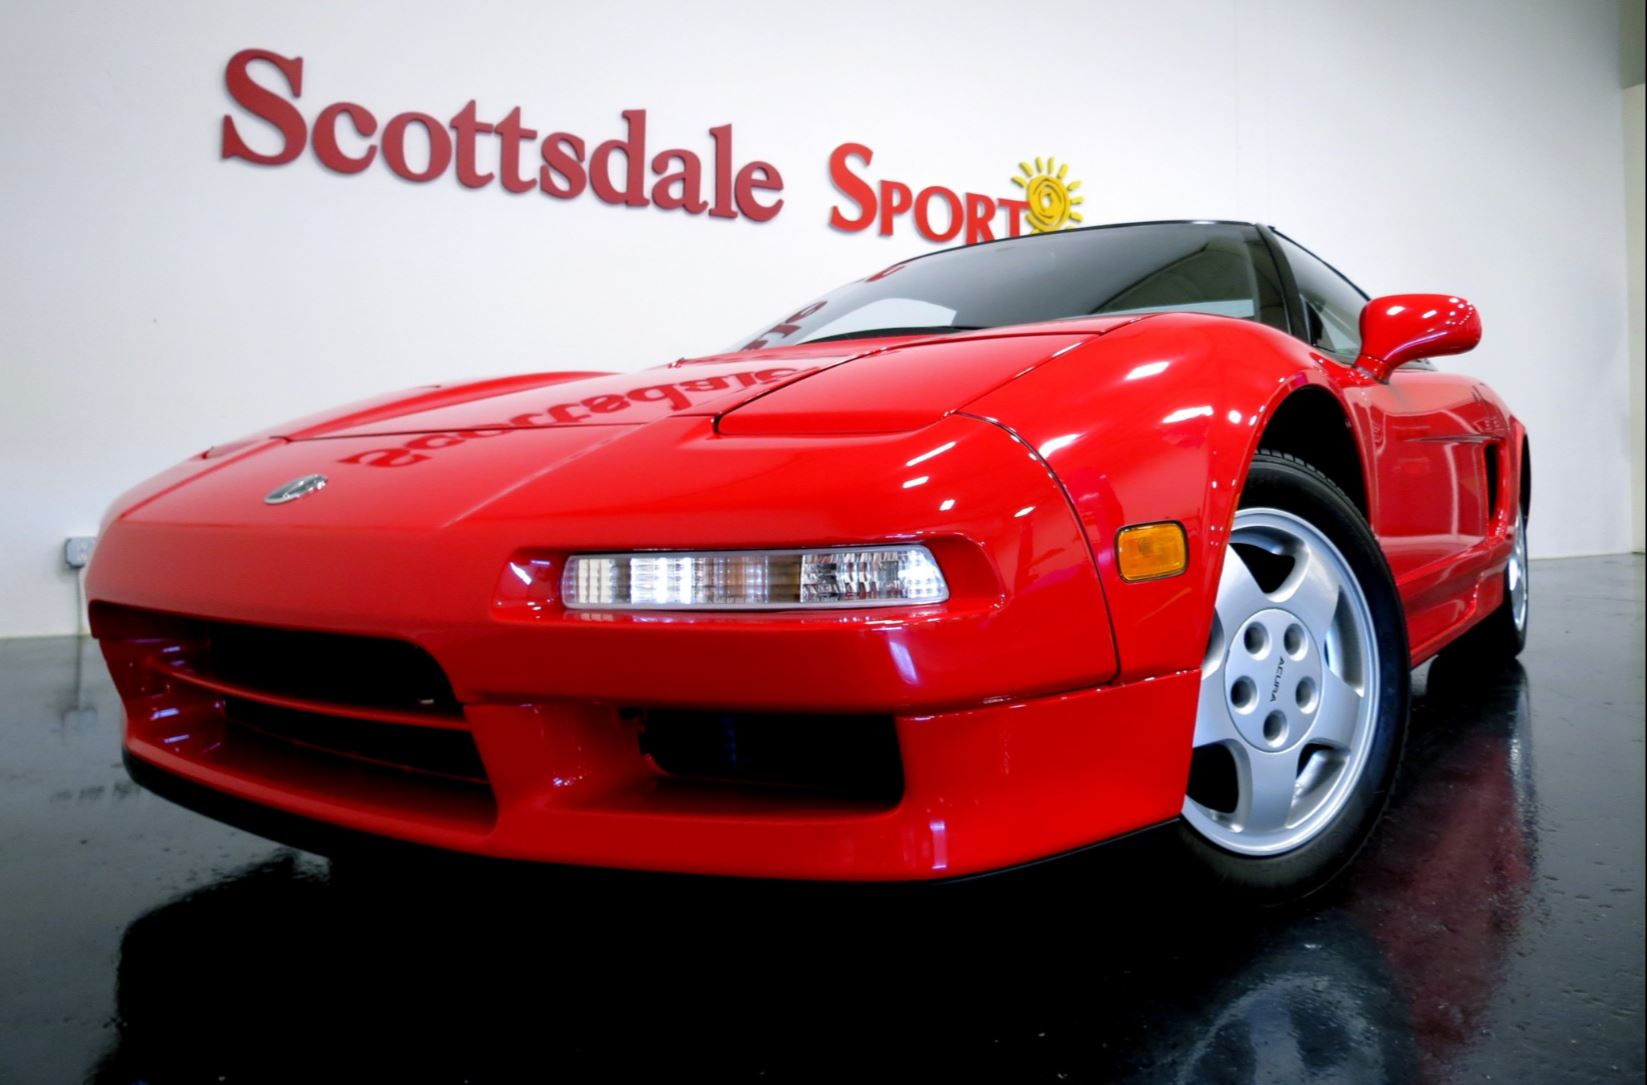 Honda/Acura NSX For Sale - Only Travelled 1,700 Miles ...